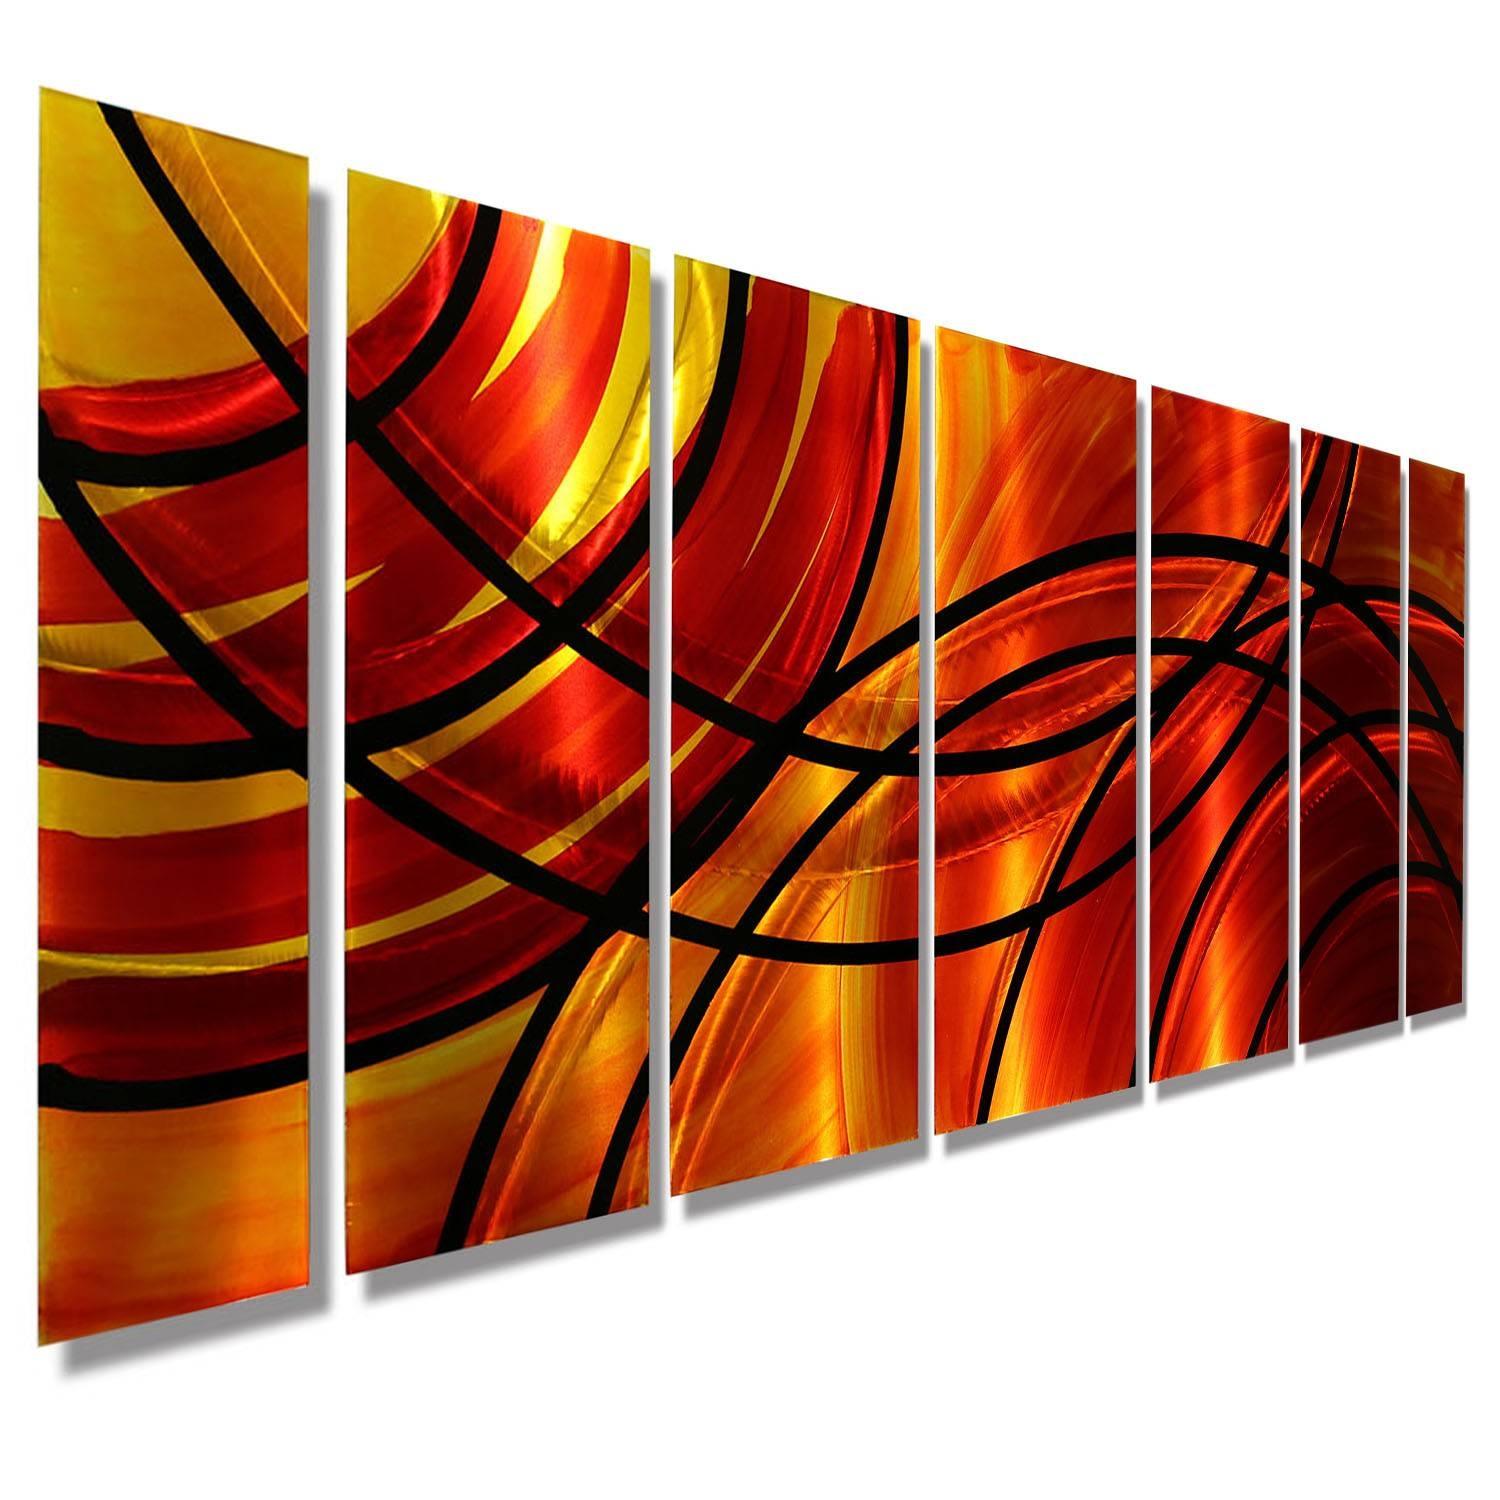 Boundfire – Red & Orange Modern Metal Wall Artjon Allen Intended For Newest Painting Metal Wall Art (View 3 of 20)